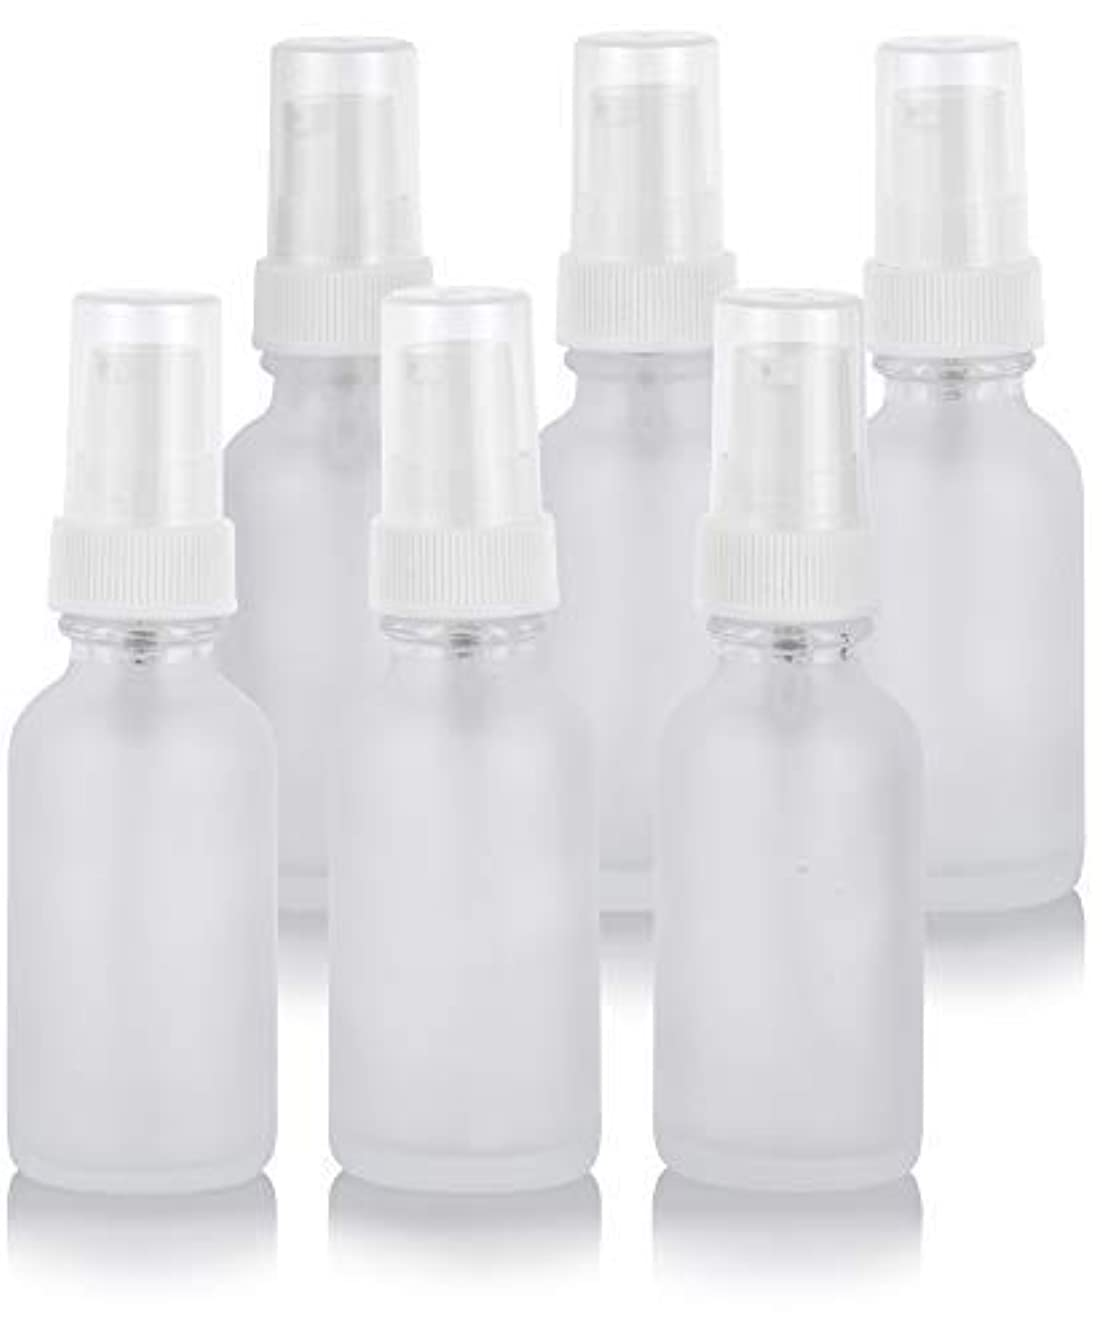 思慮深い空港美容師1 oz Frosted Clear Glass Boston Round White Treatment Pump Bottle (6 Pack) + Funnel for Cosmetics, serums, Essential Oils, Aromatherapy, Food Grade, bpa Free [並行輸入品]